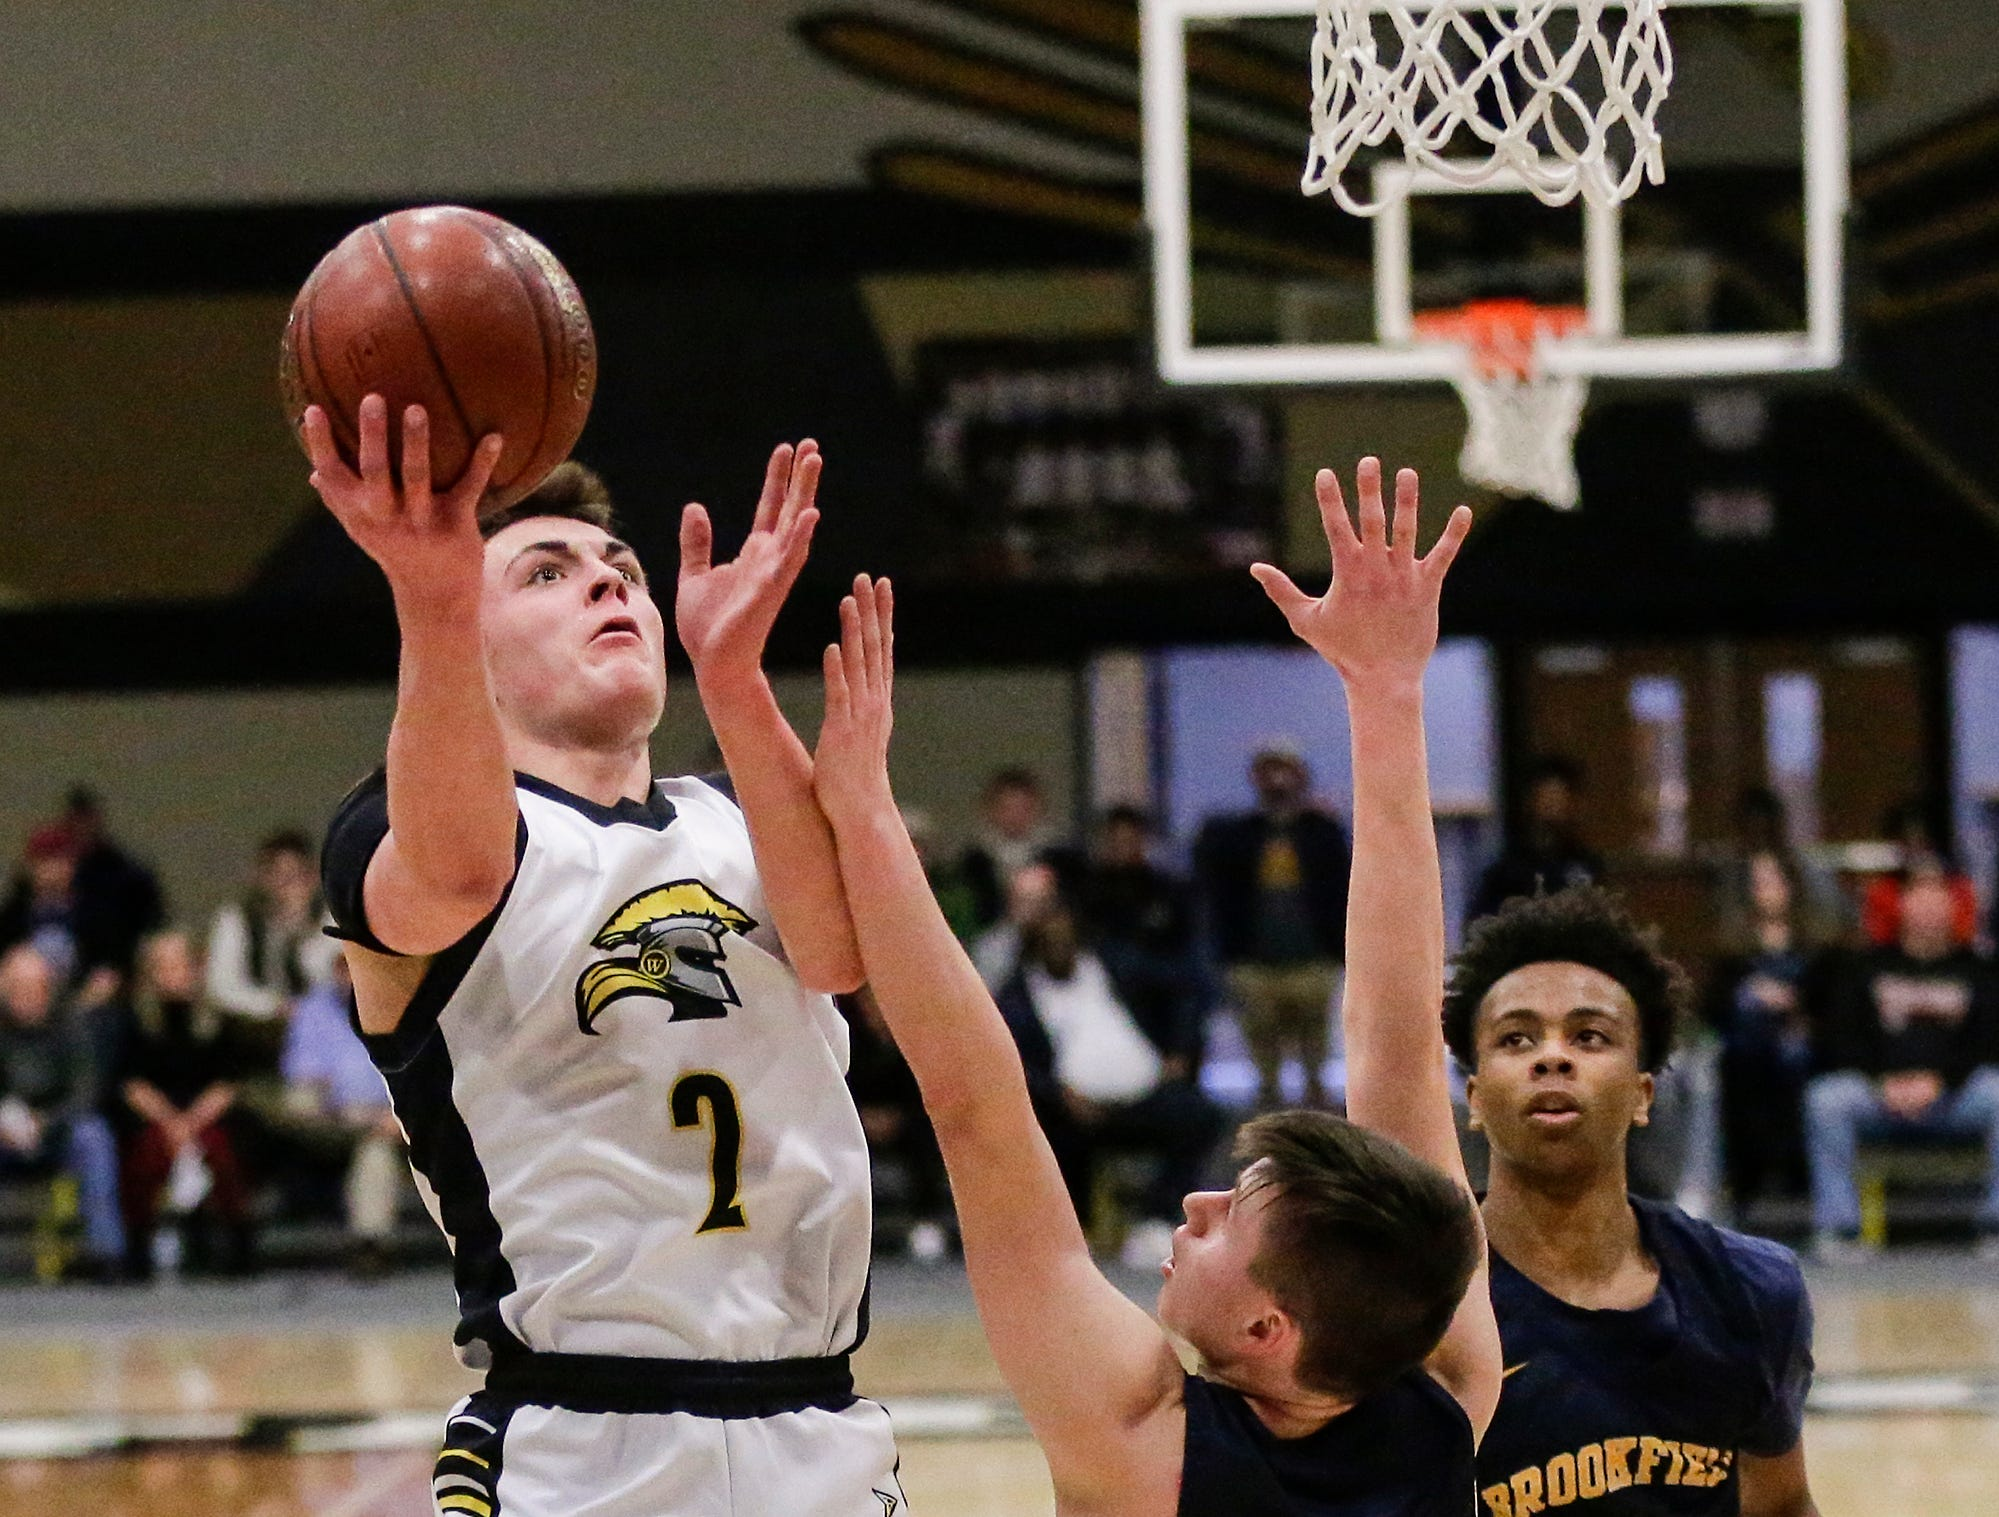 Waupun High School boys basketball's Trevor VandeZande goes up for a basket against Brookfield Academy during their WIAA division 3 sectional final game Saturday, March 9, 2019 in Brown Deer, Wis. Waupun won the game 64-58 and will advance to the state tournament. Doug Raflik/USA TODAY NETWORK-Wisconsin